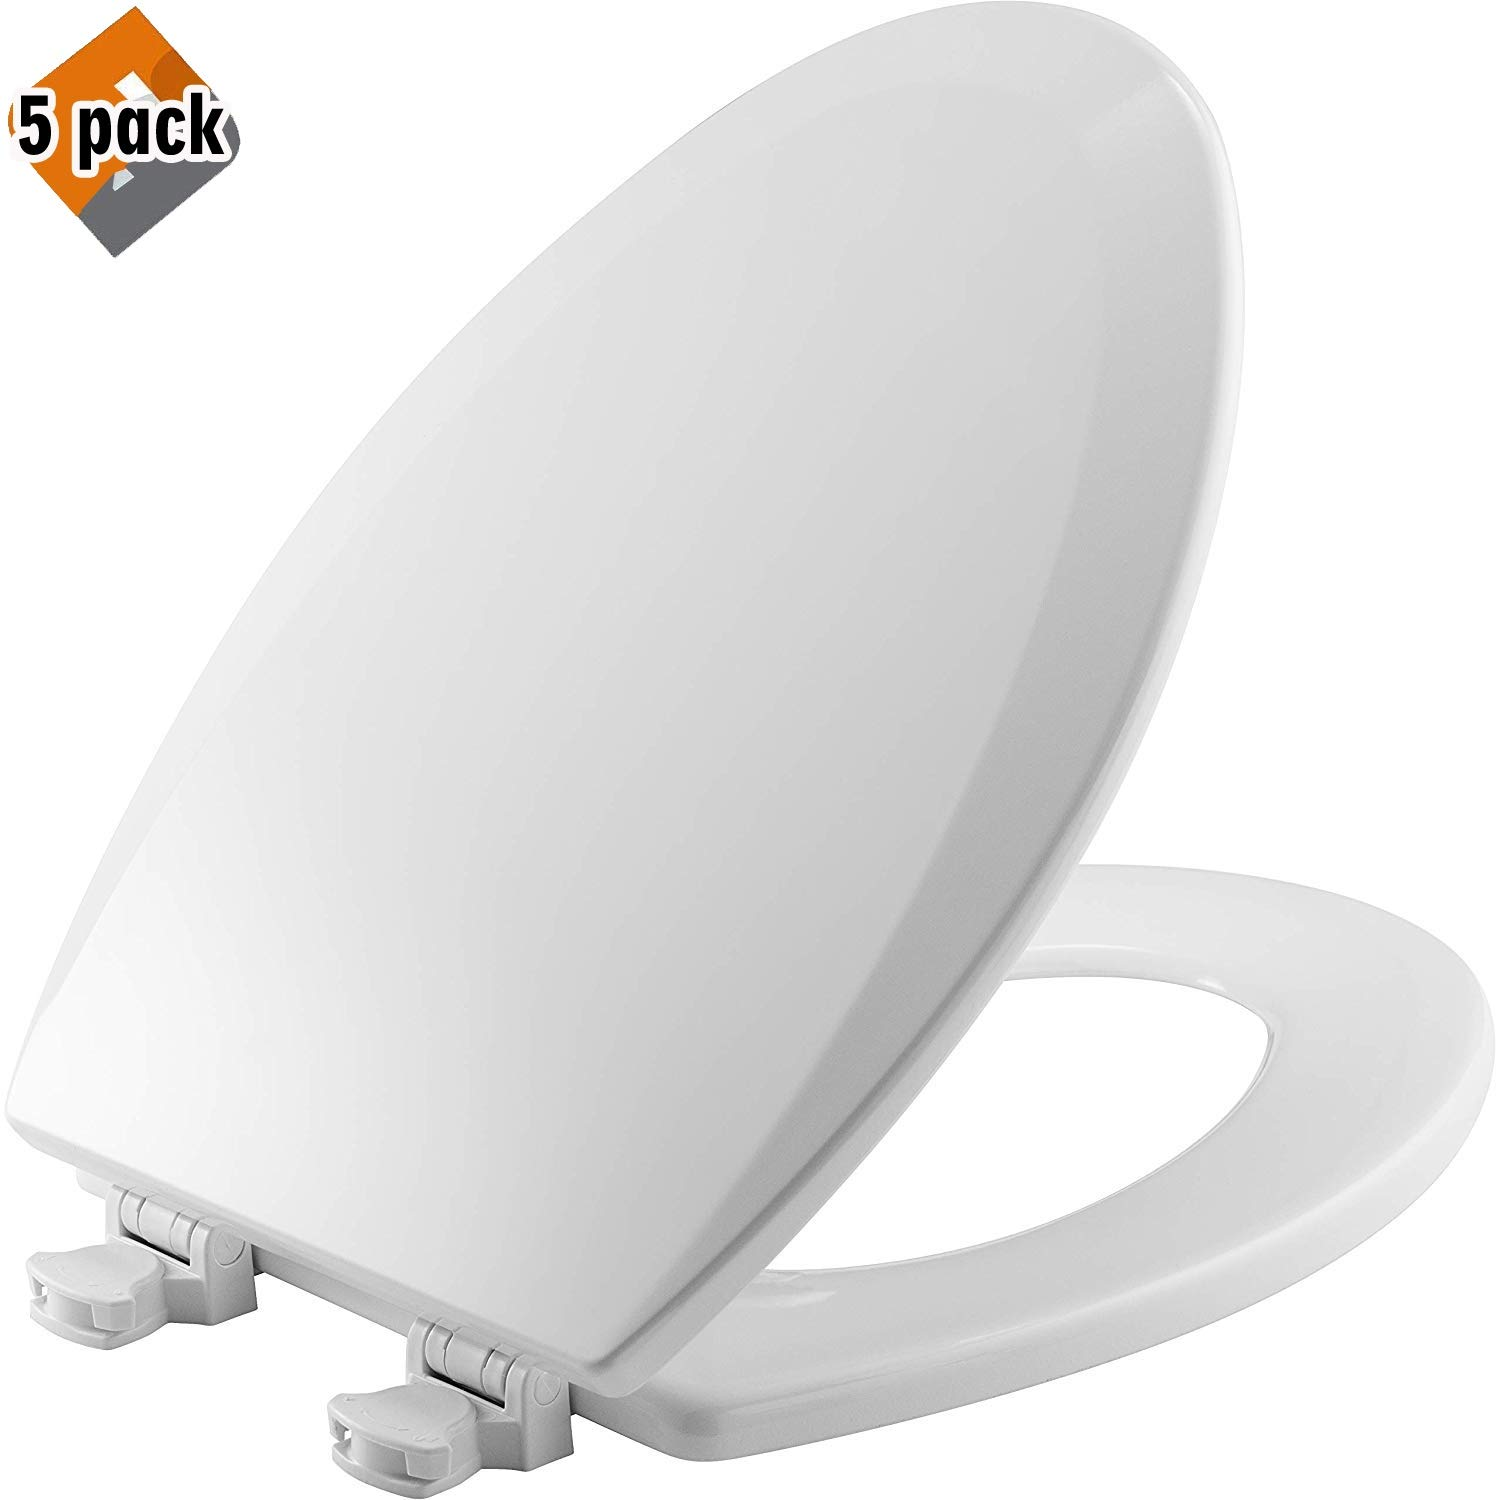 Bemis 1500EC 000 Wood Elongated Toilet Seat With Easy Clean & Change Hinge, 5 Pack by Bemis (Image #1)